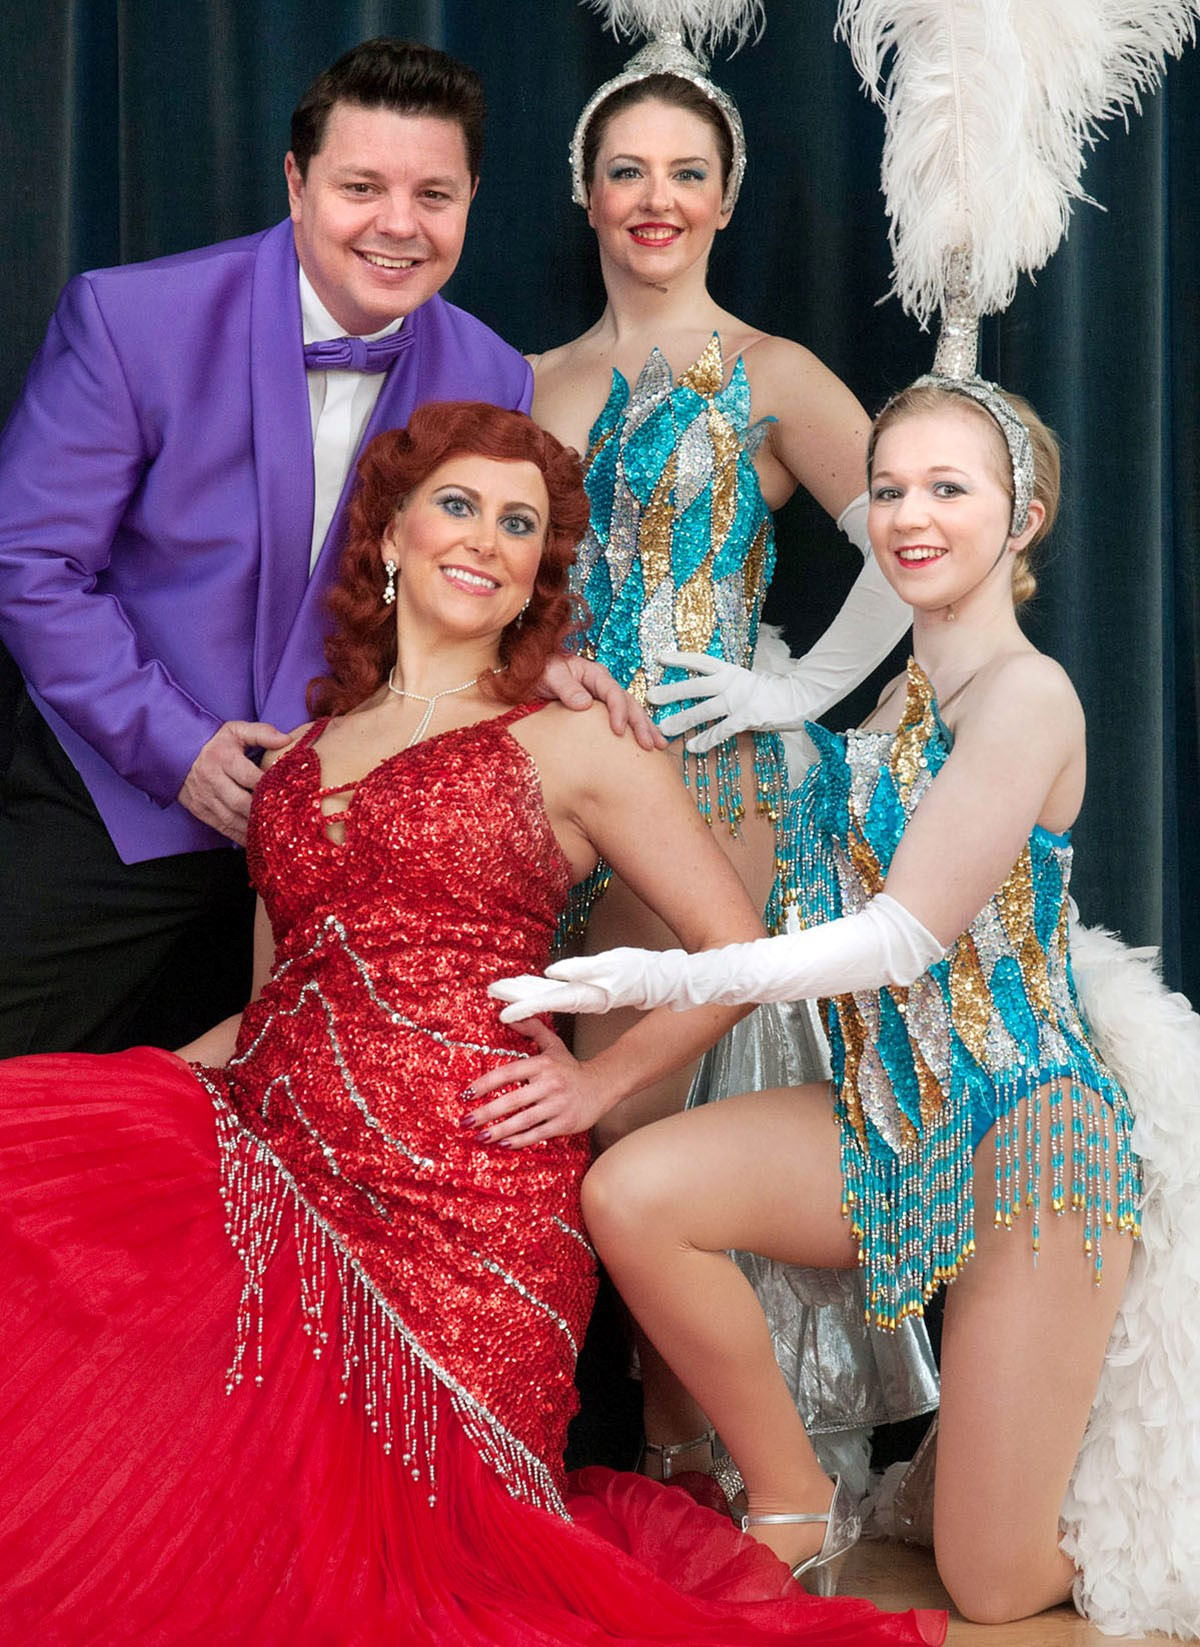 L-r - Mitchell Bastable as Tony, Fleur Petford as Lola, Toni Oakley and Beth Henwood as showgirls. Buy photo: 141413MH